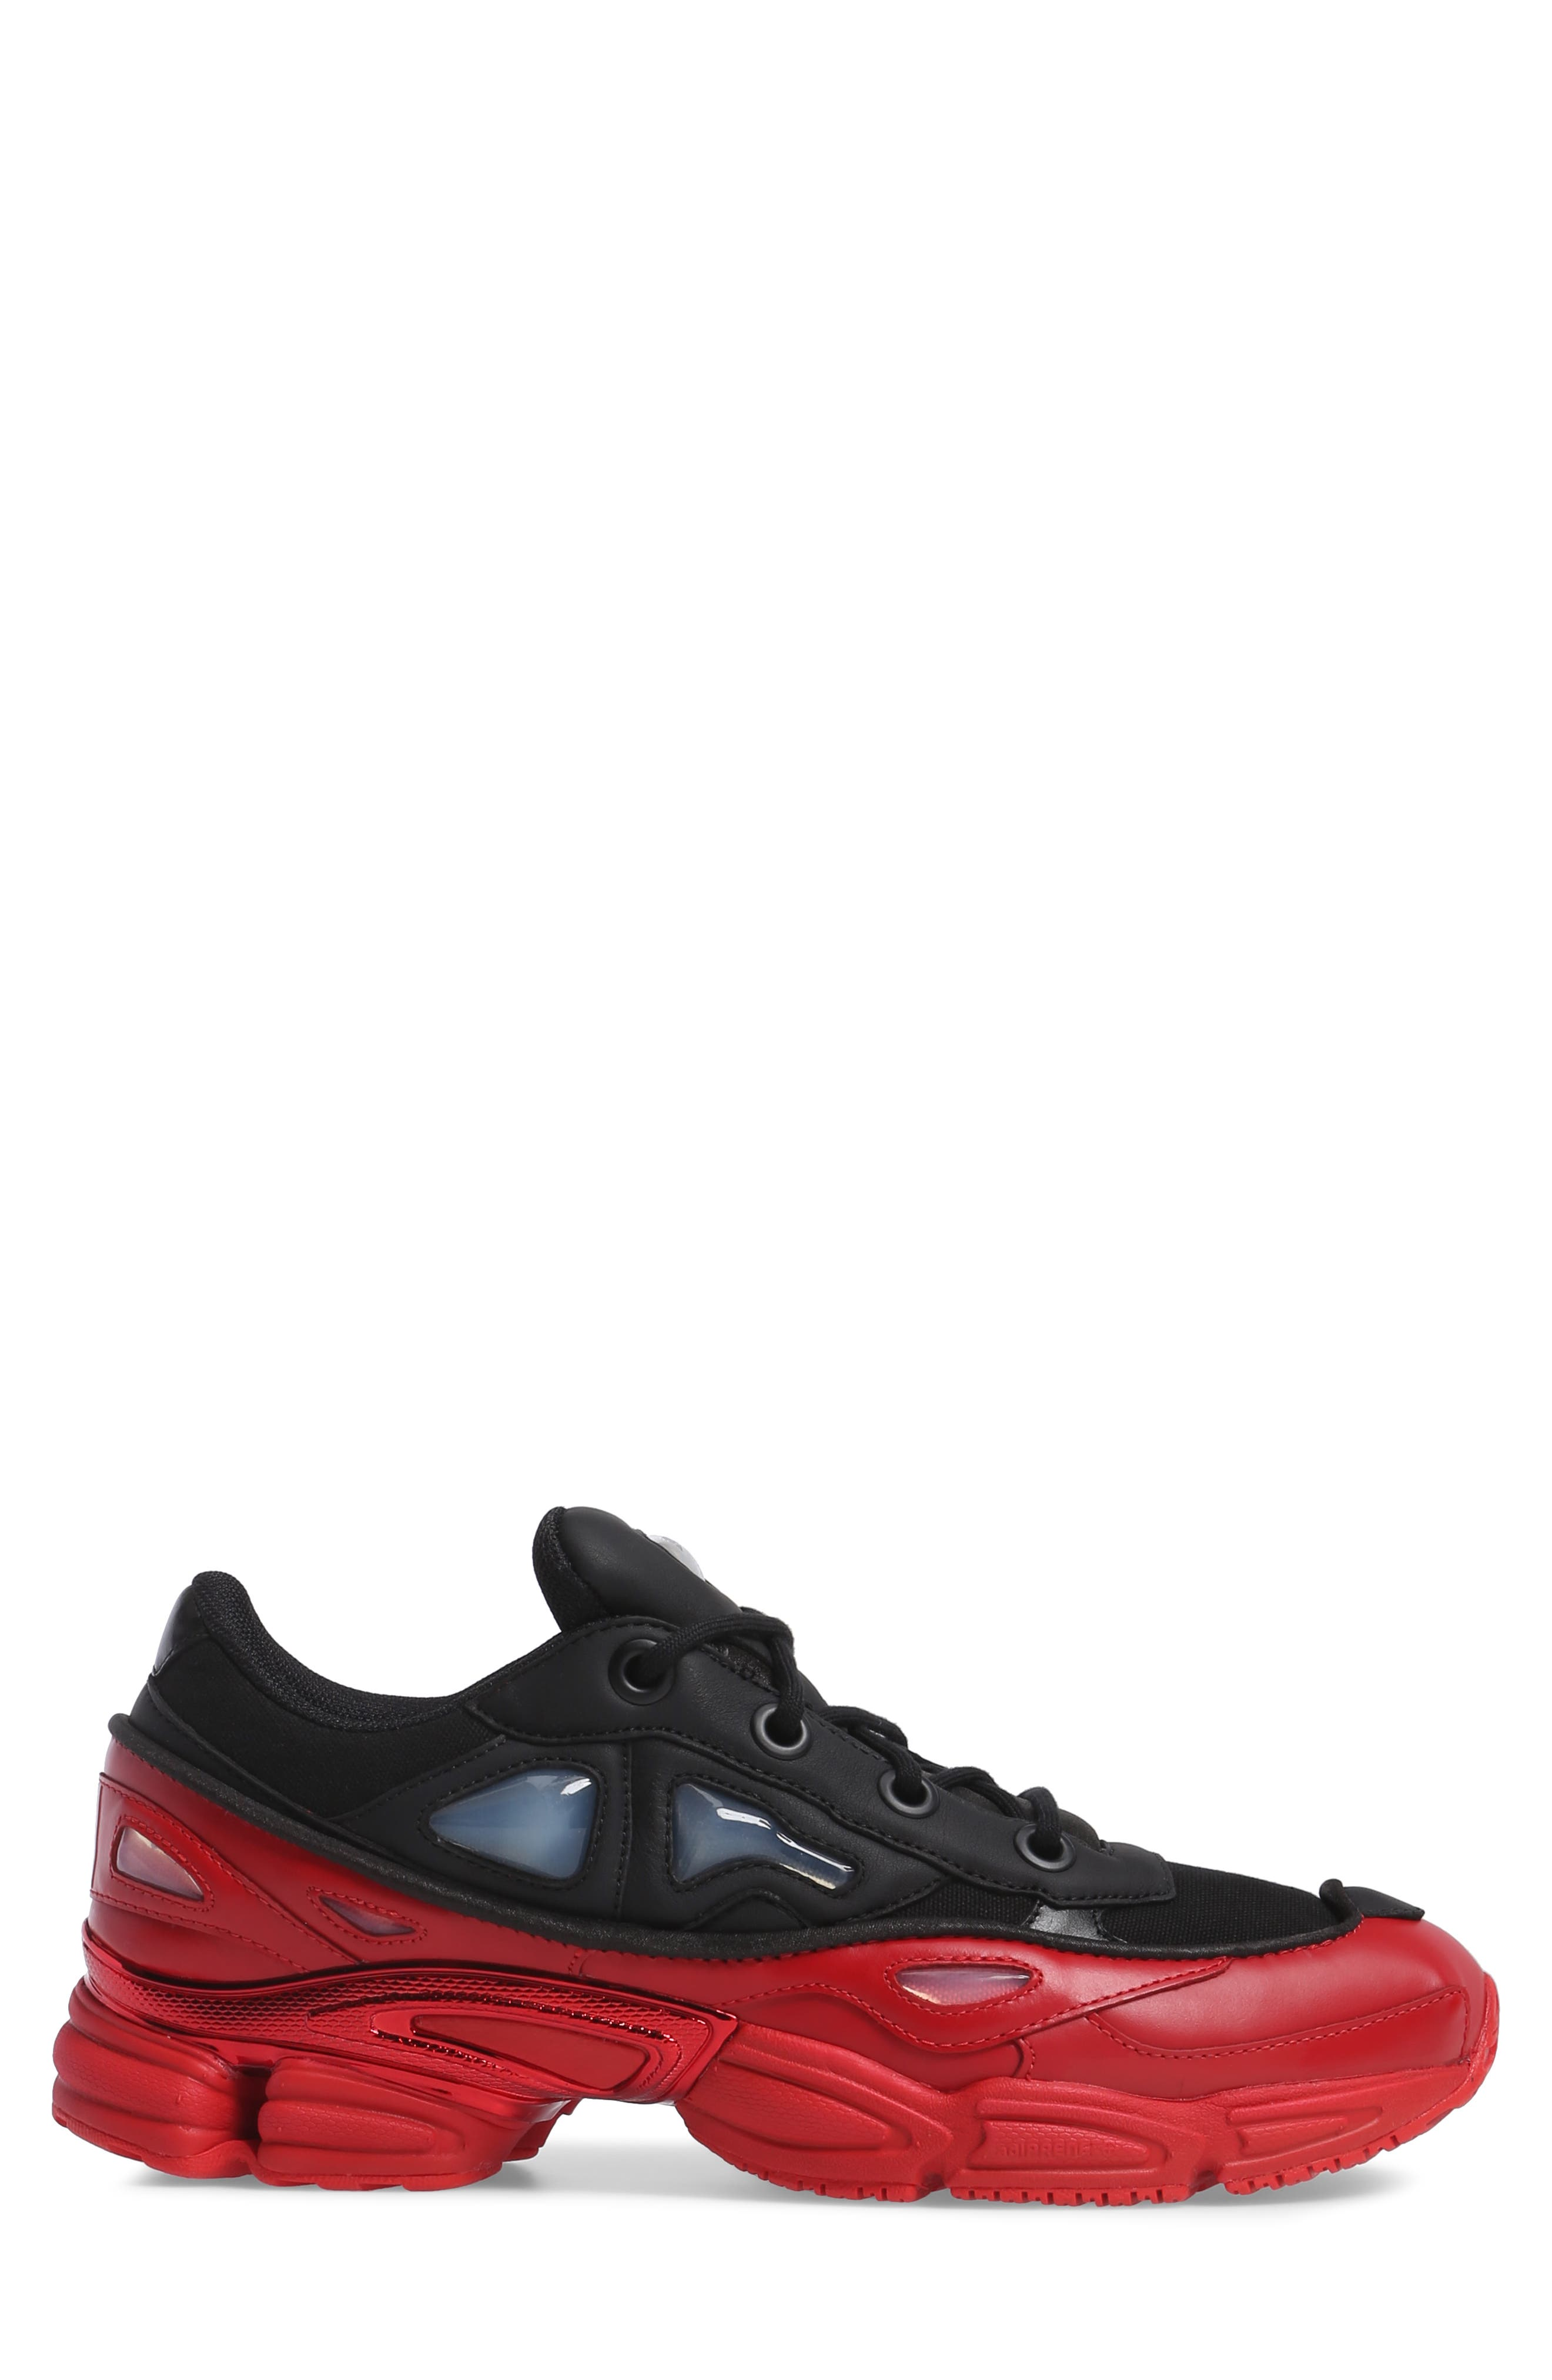 Alternate Image 3  - adidas by Raf Simons Ozweego Bunny Sneaker (Men)